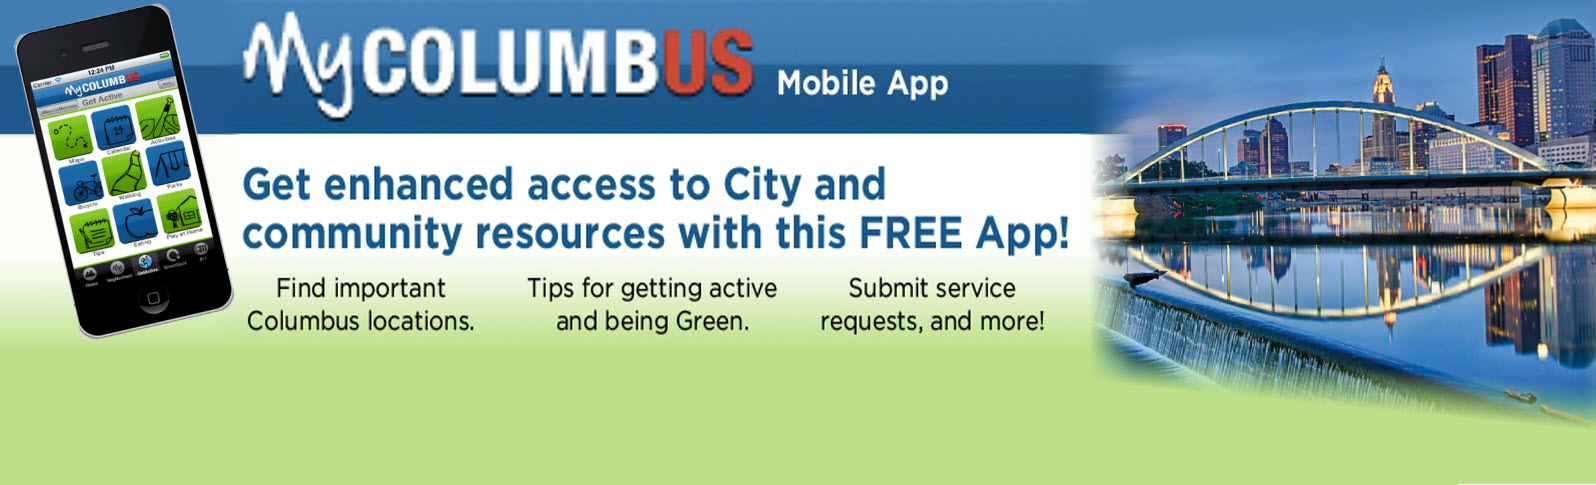 MyCOLUMBUS Mobile App